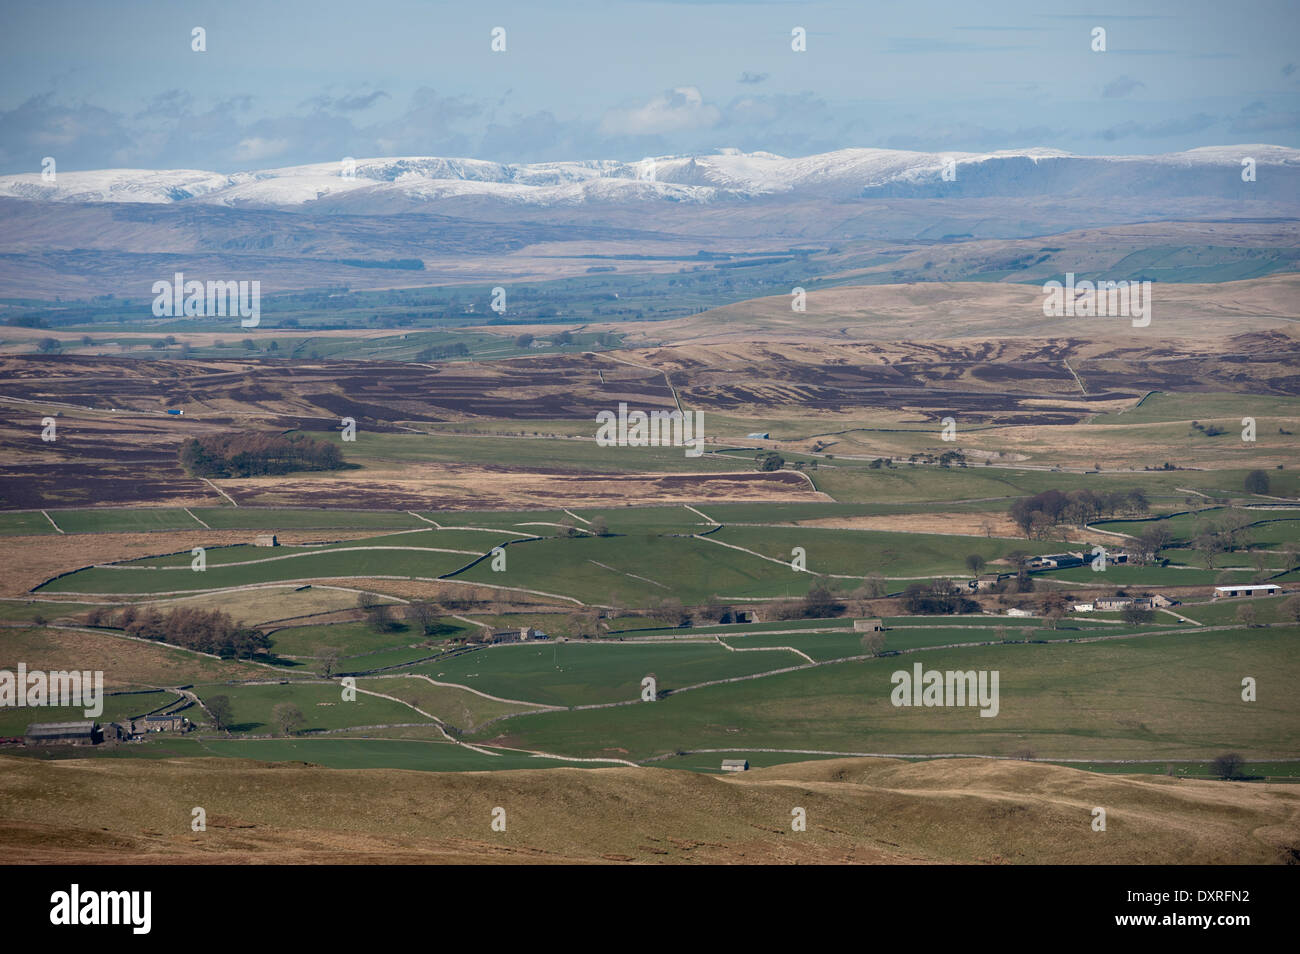 Looking over the Upper Eden Valley towards snow covered hills of the Lake District. Cumbria, UK - Stock Image